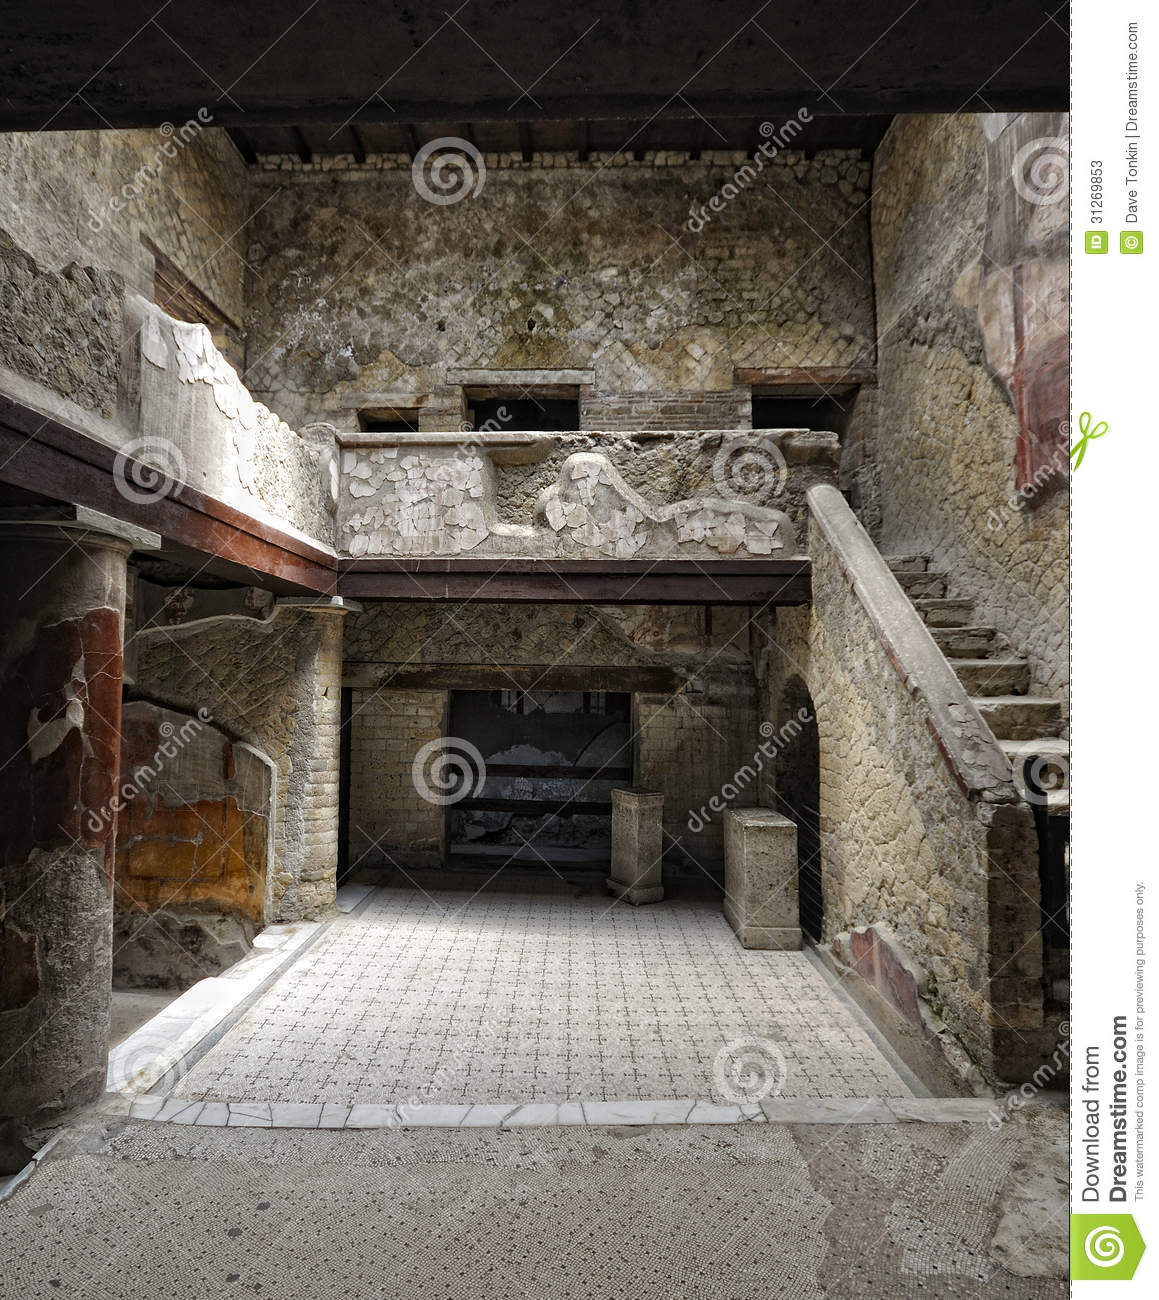 Herculaneum house interior stock photos image 31269853 for Ancient roman interior decoration